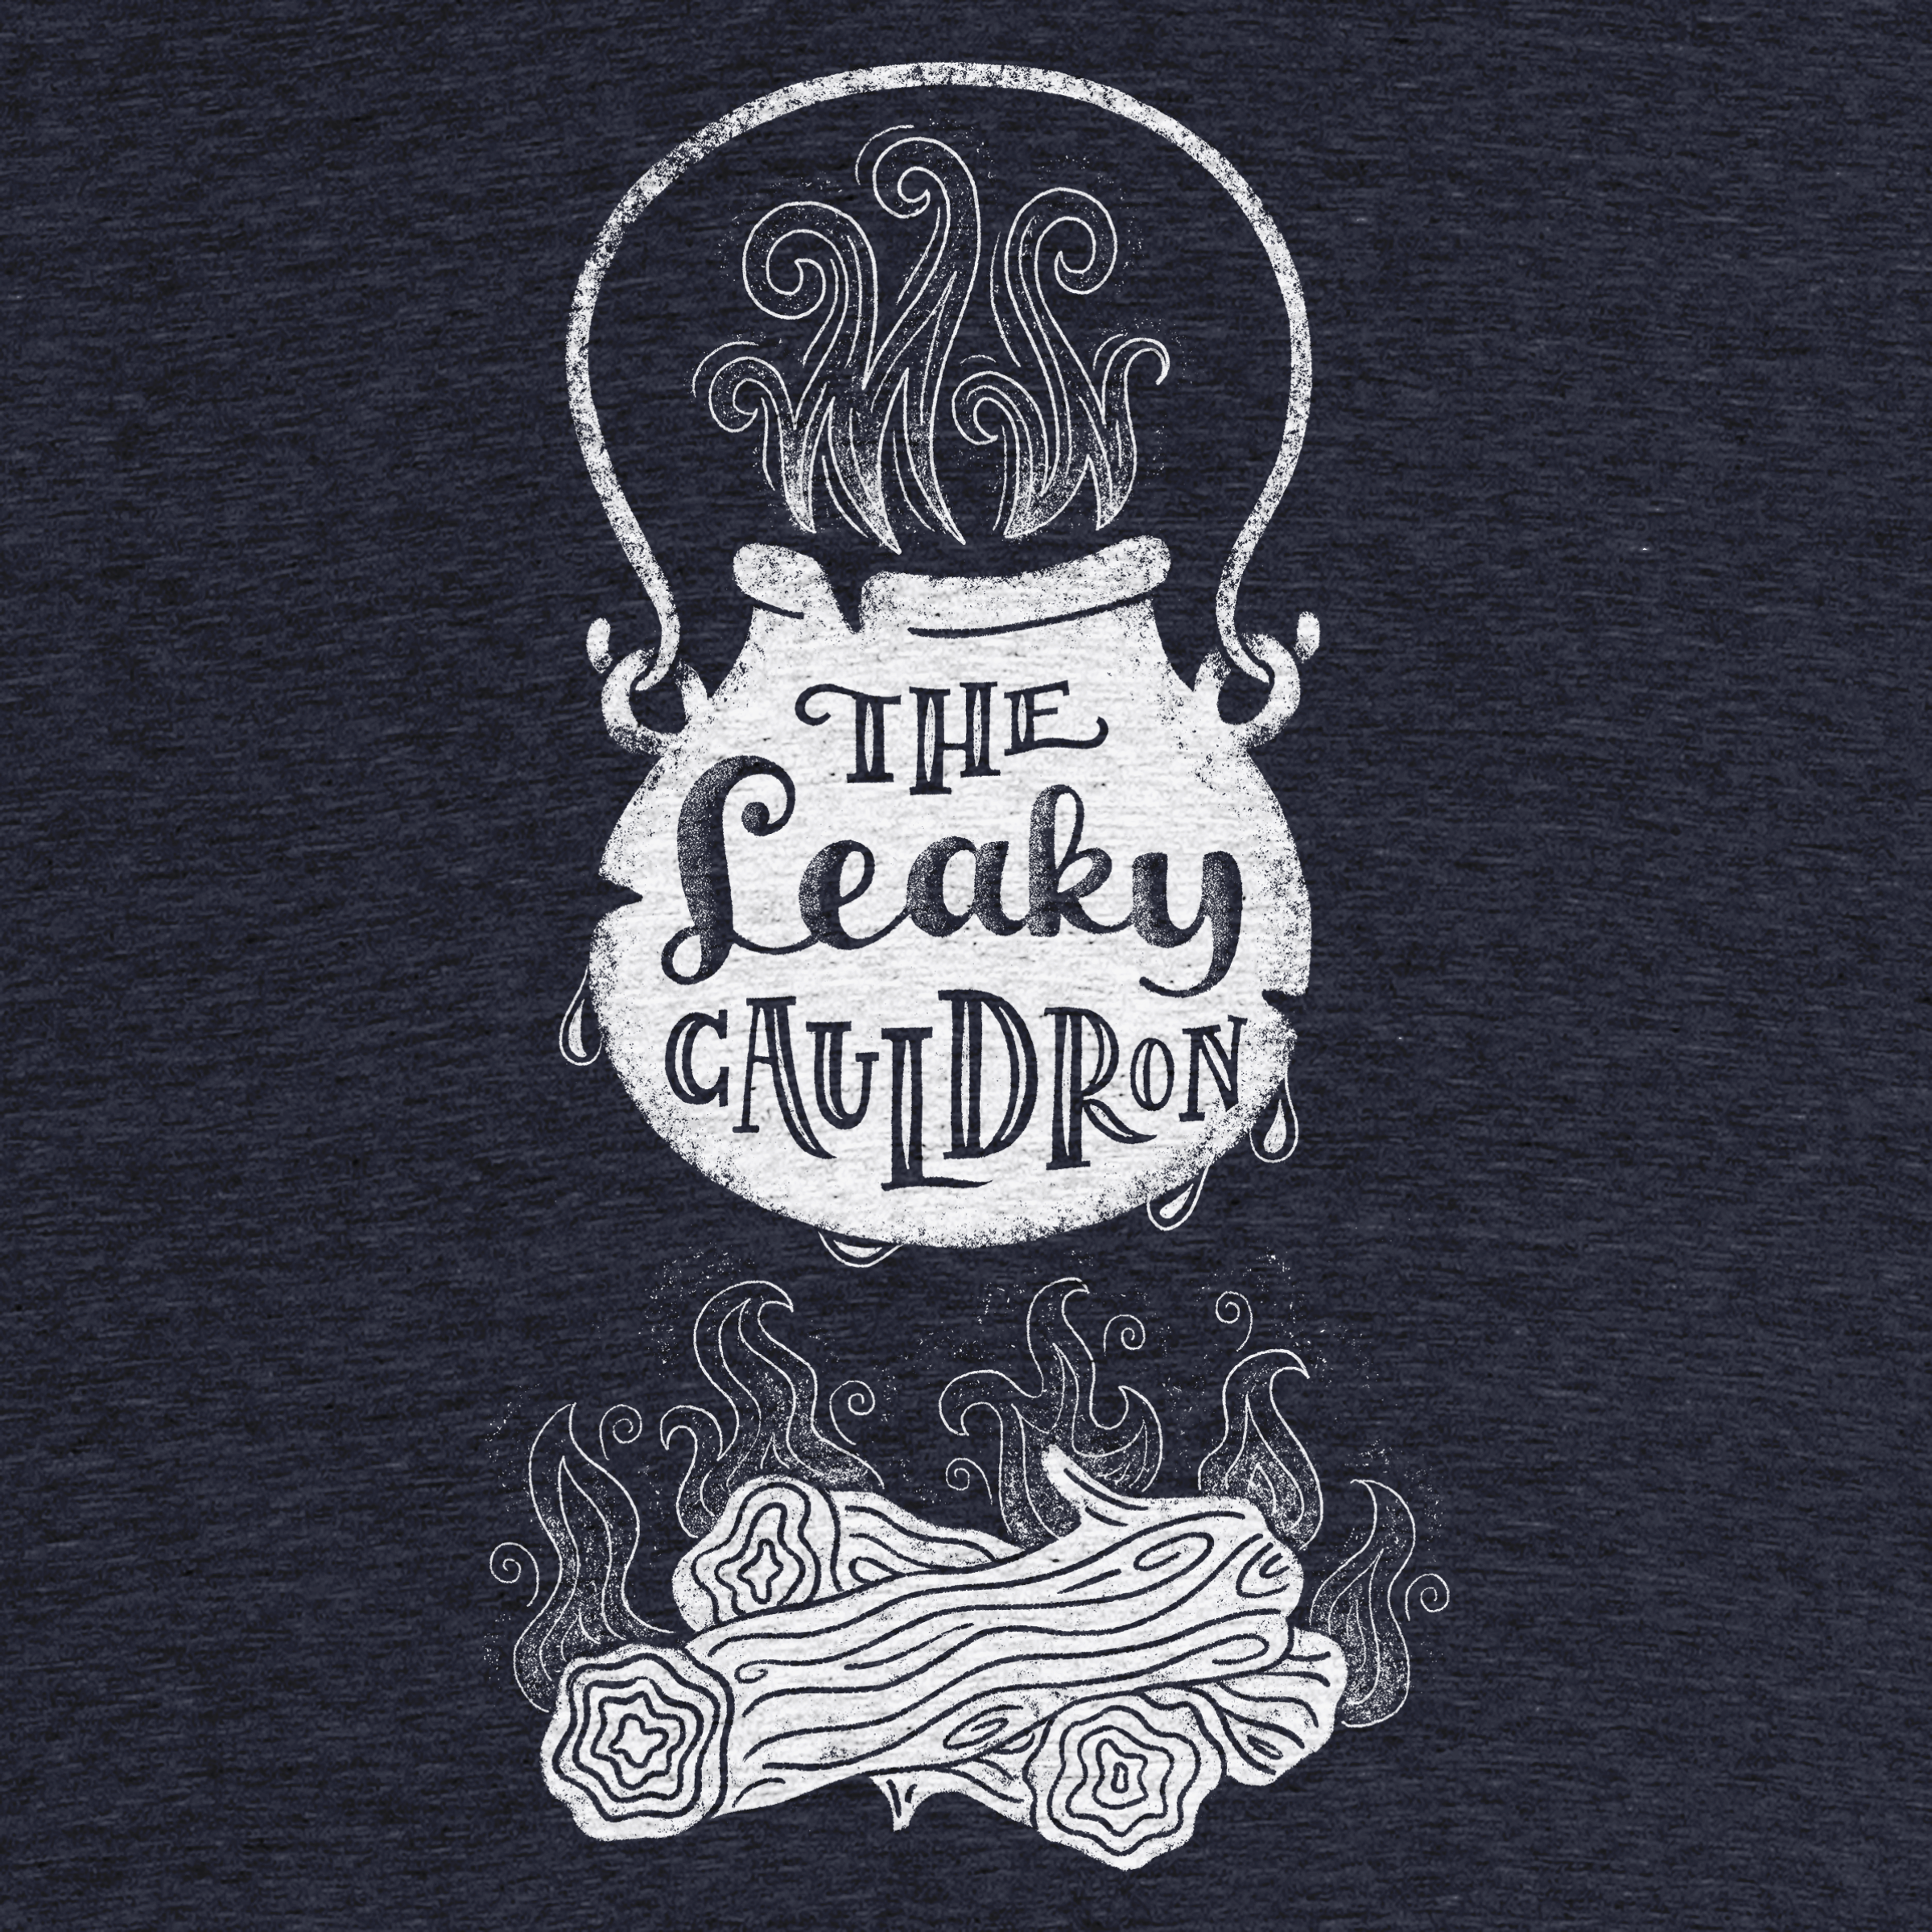 Leaky Cauldron Detail